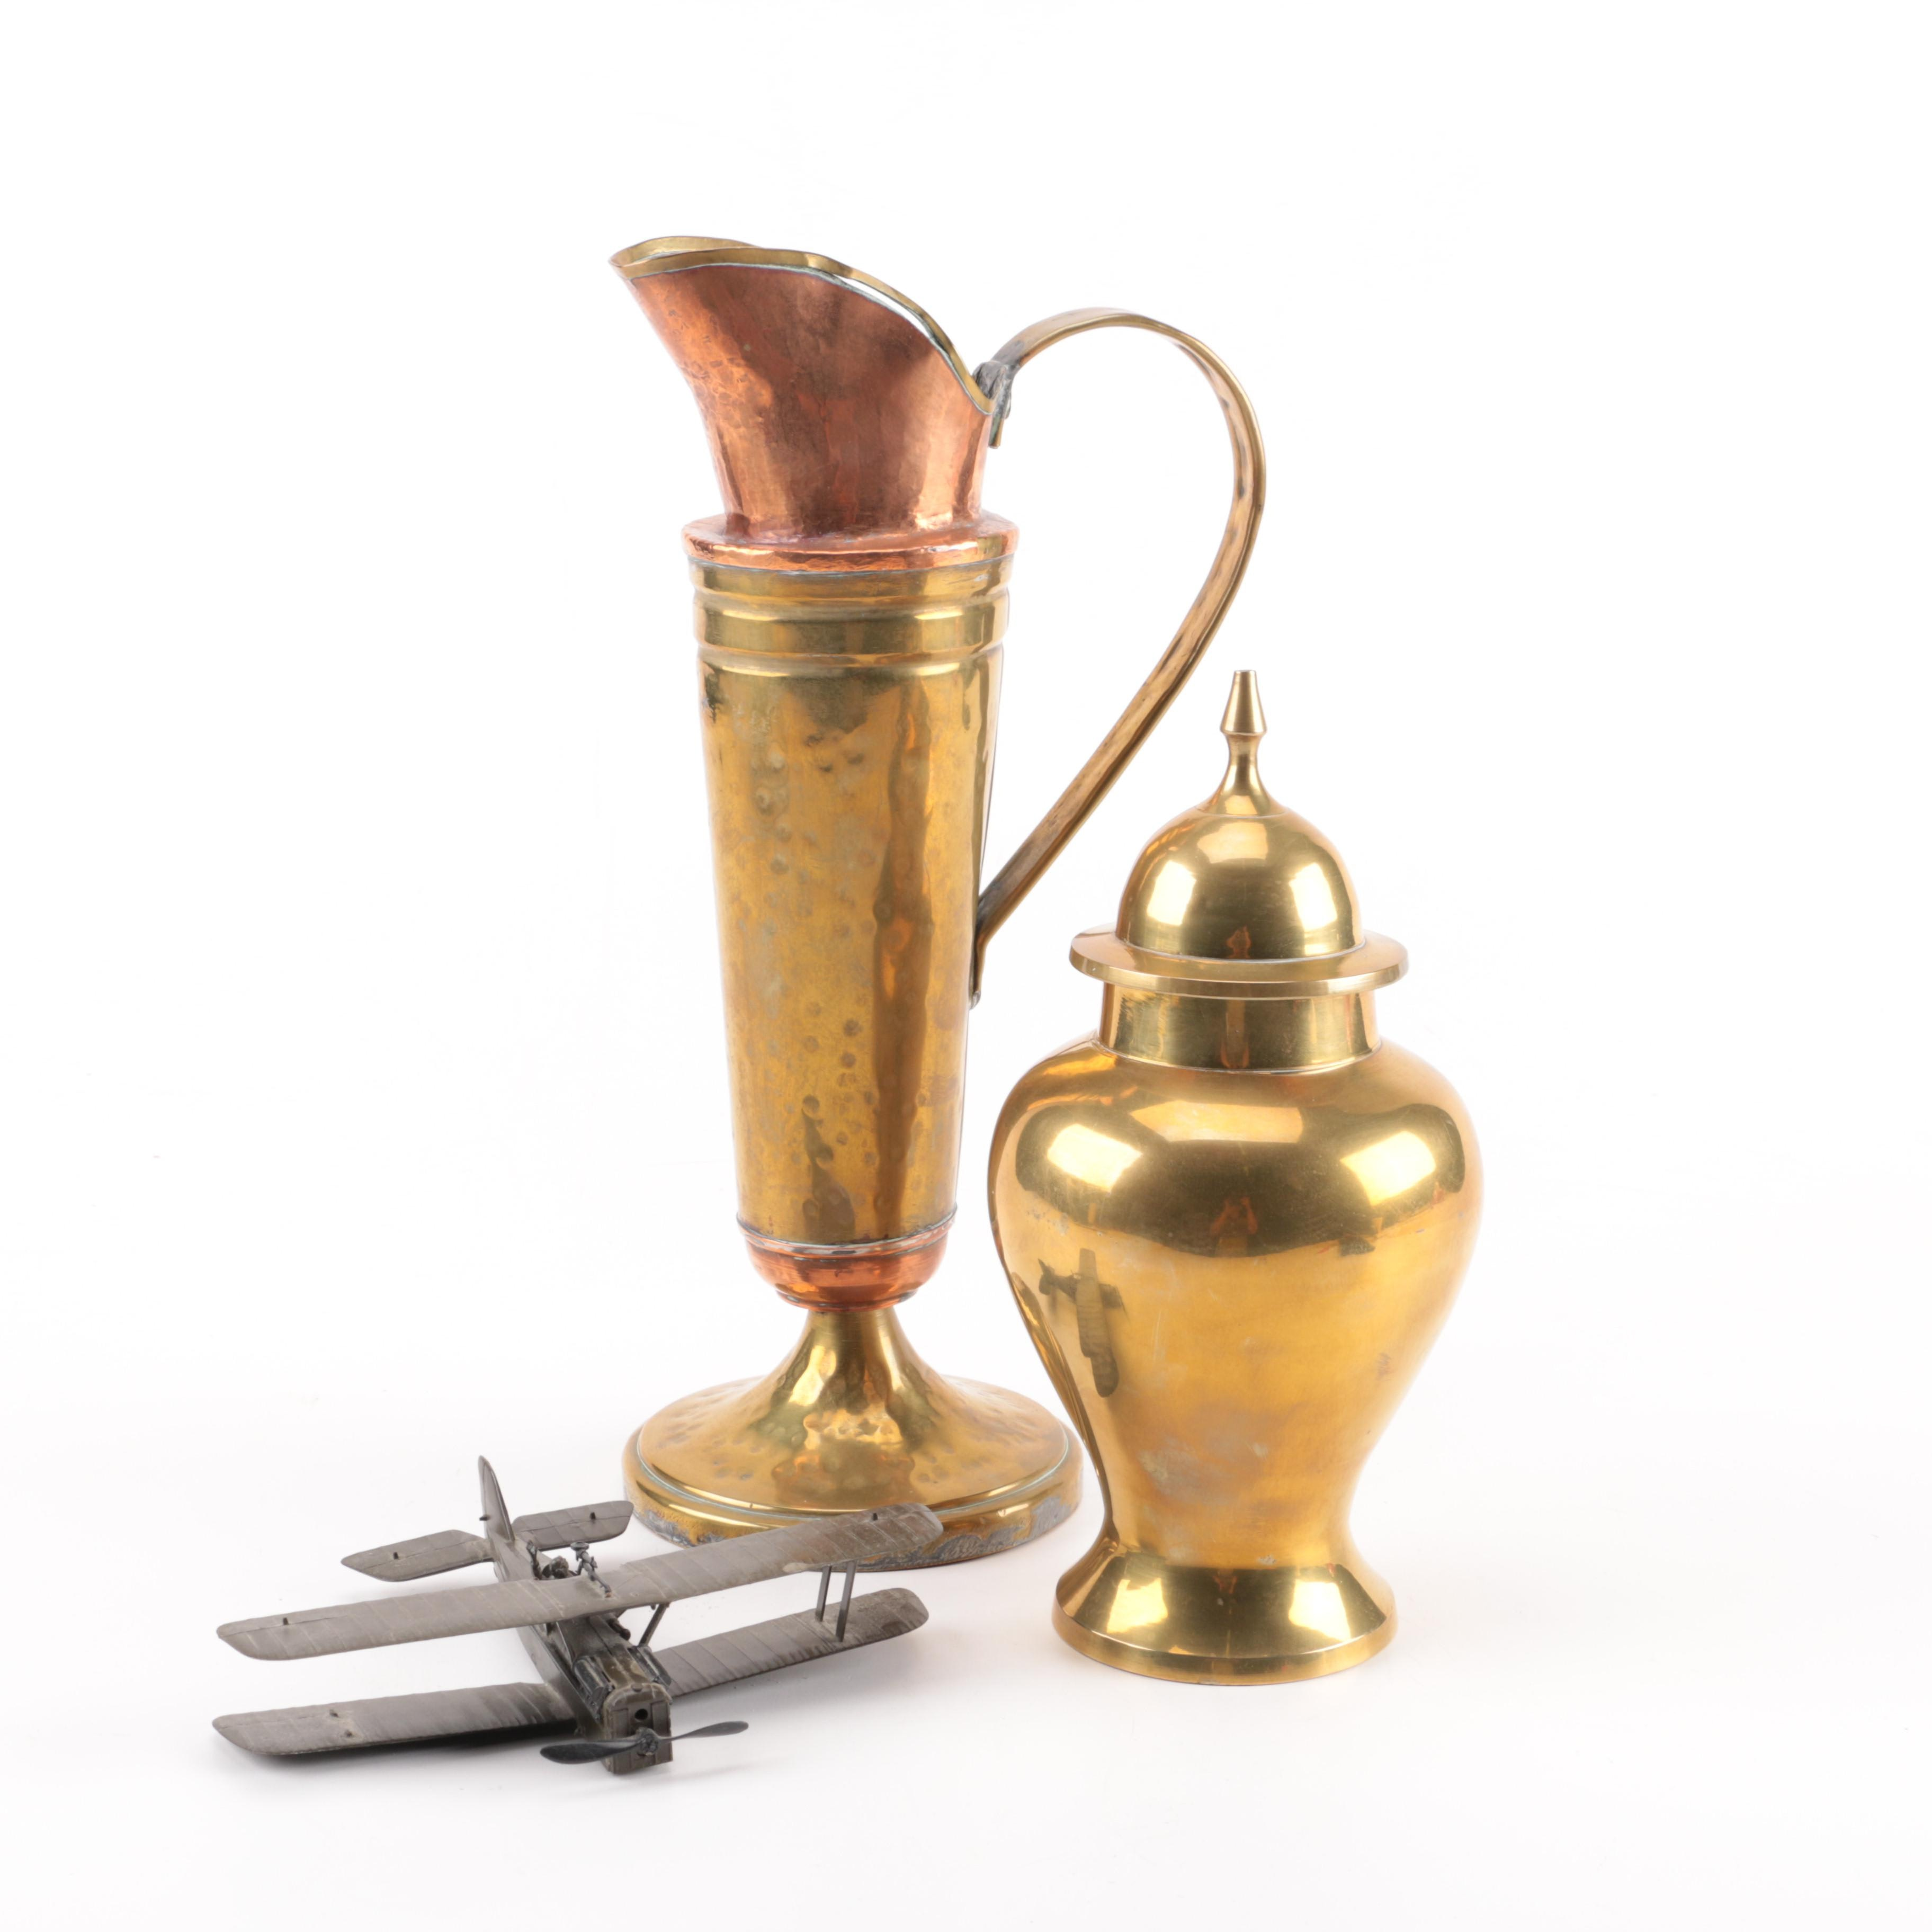 Copper and Brass Pitcher, Brass Urn and a Die Cast Plane